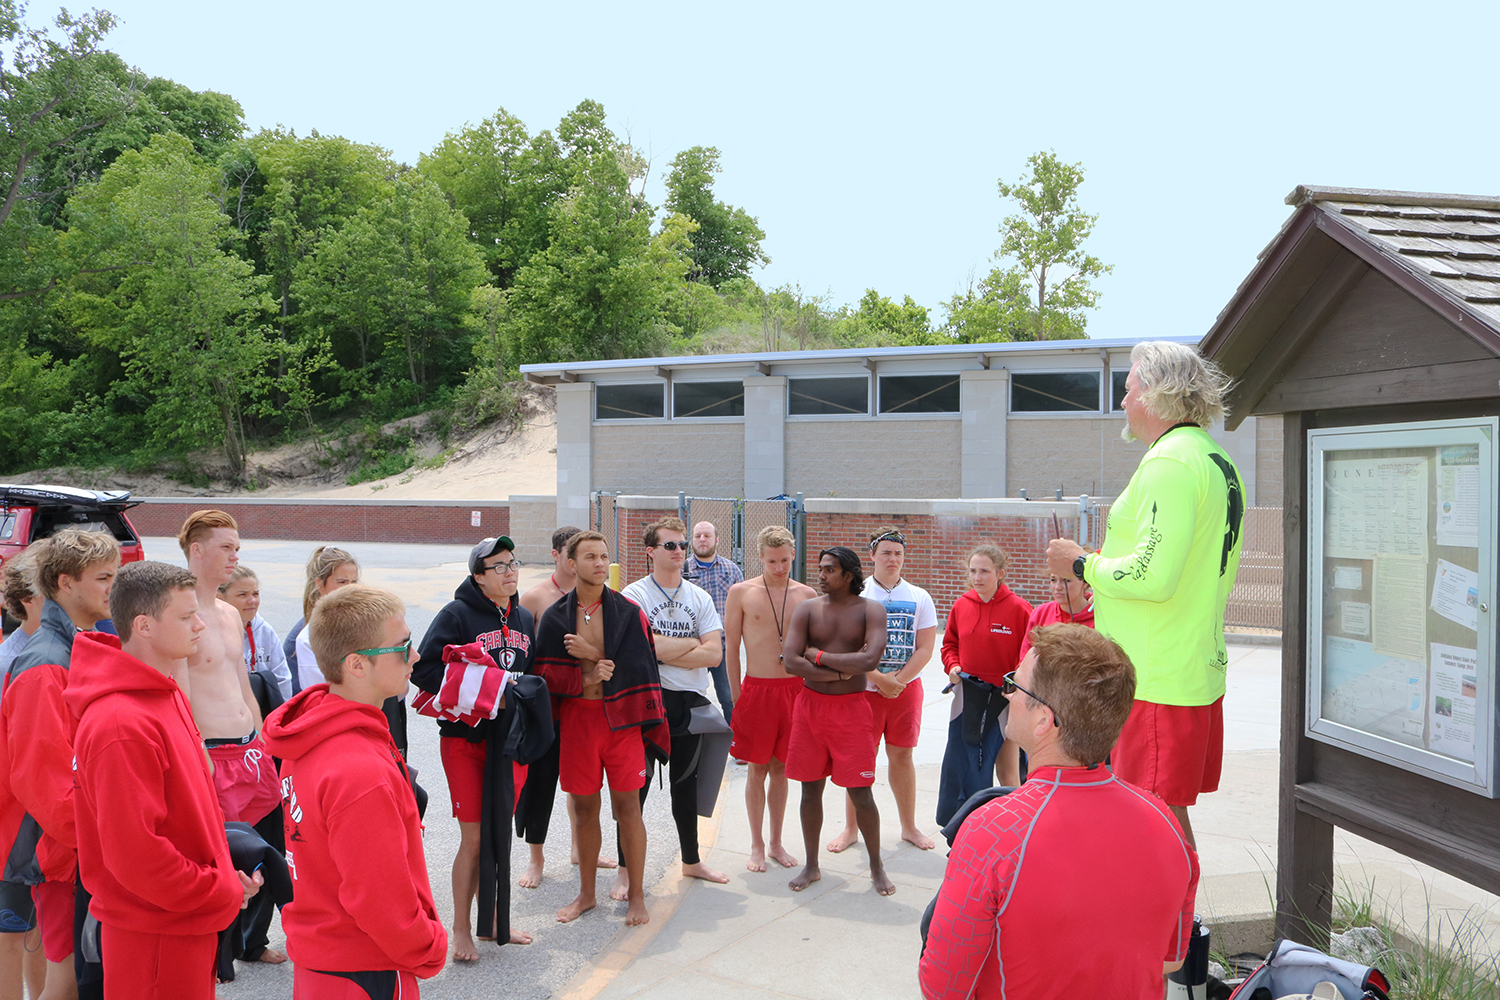 The Great Lakes Surf Rescue Project trains lifeguards on water safety and drowning survival strategies. (Courtesy Dave Benjamin)